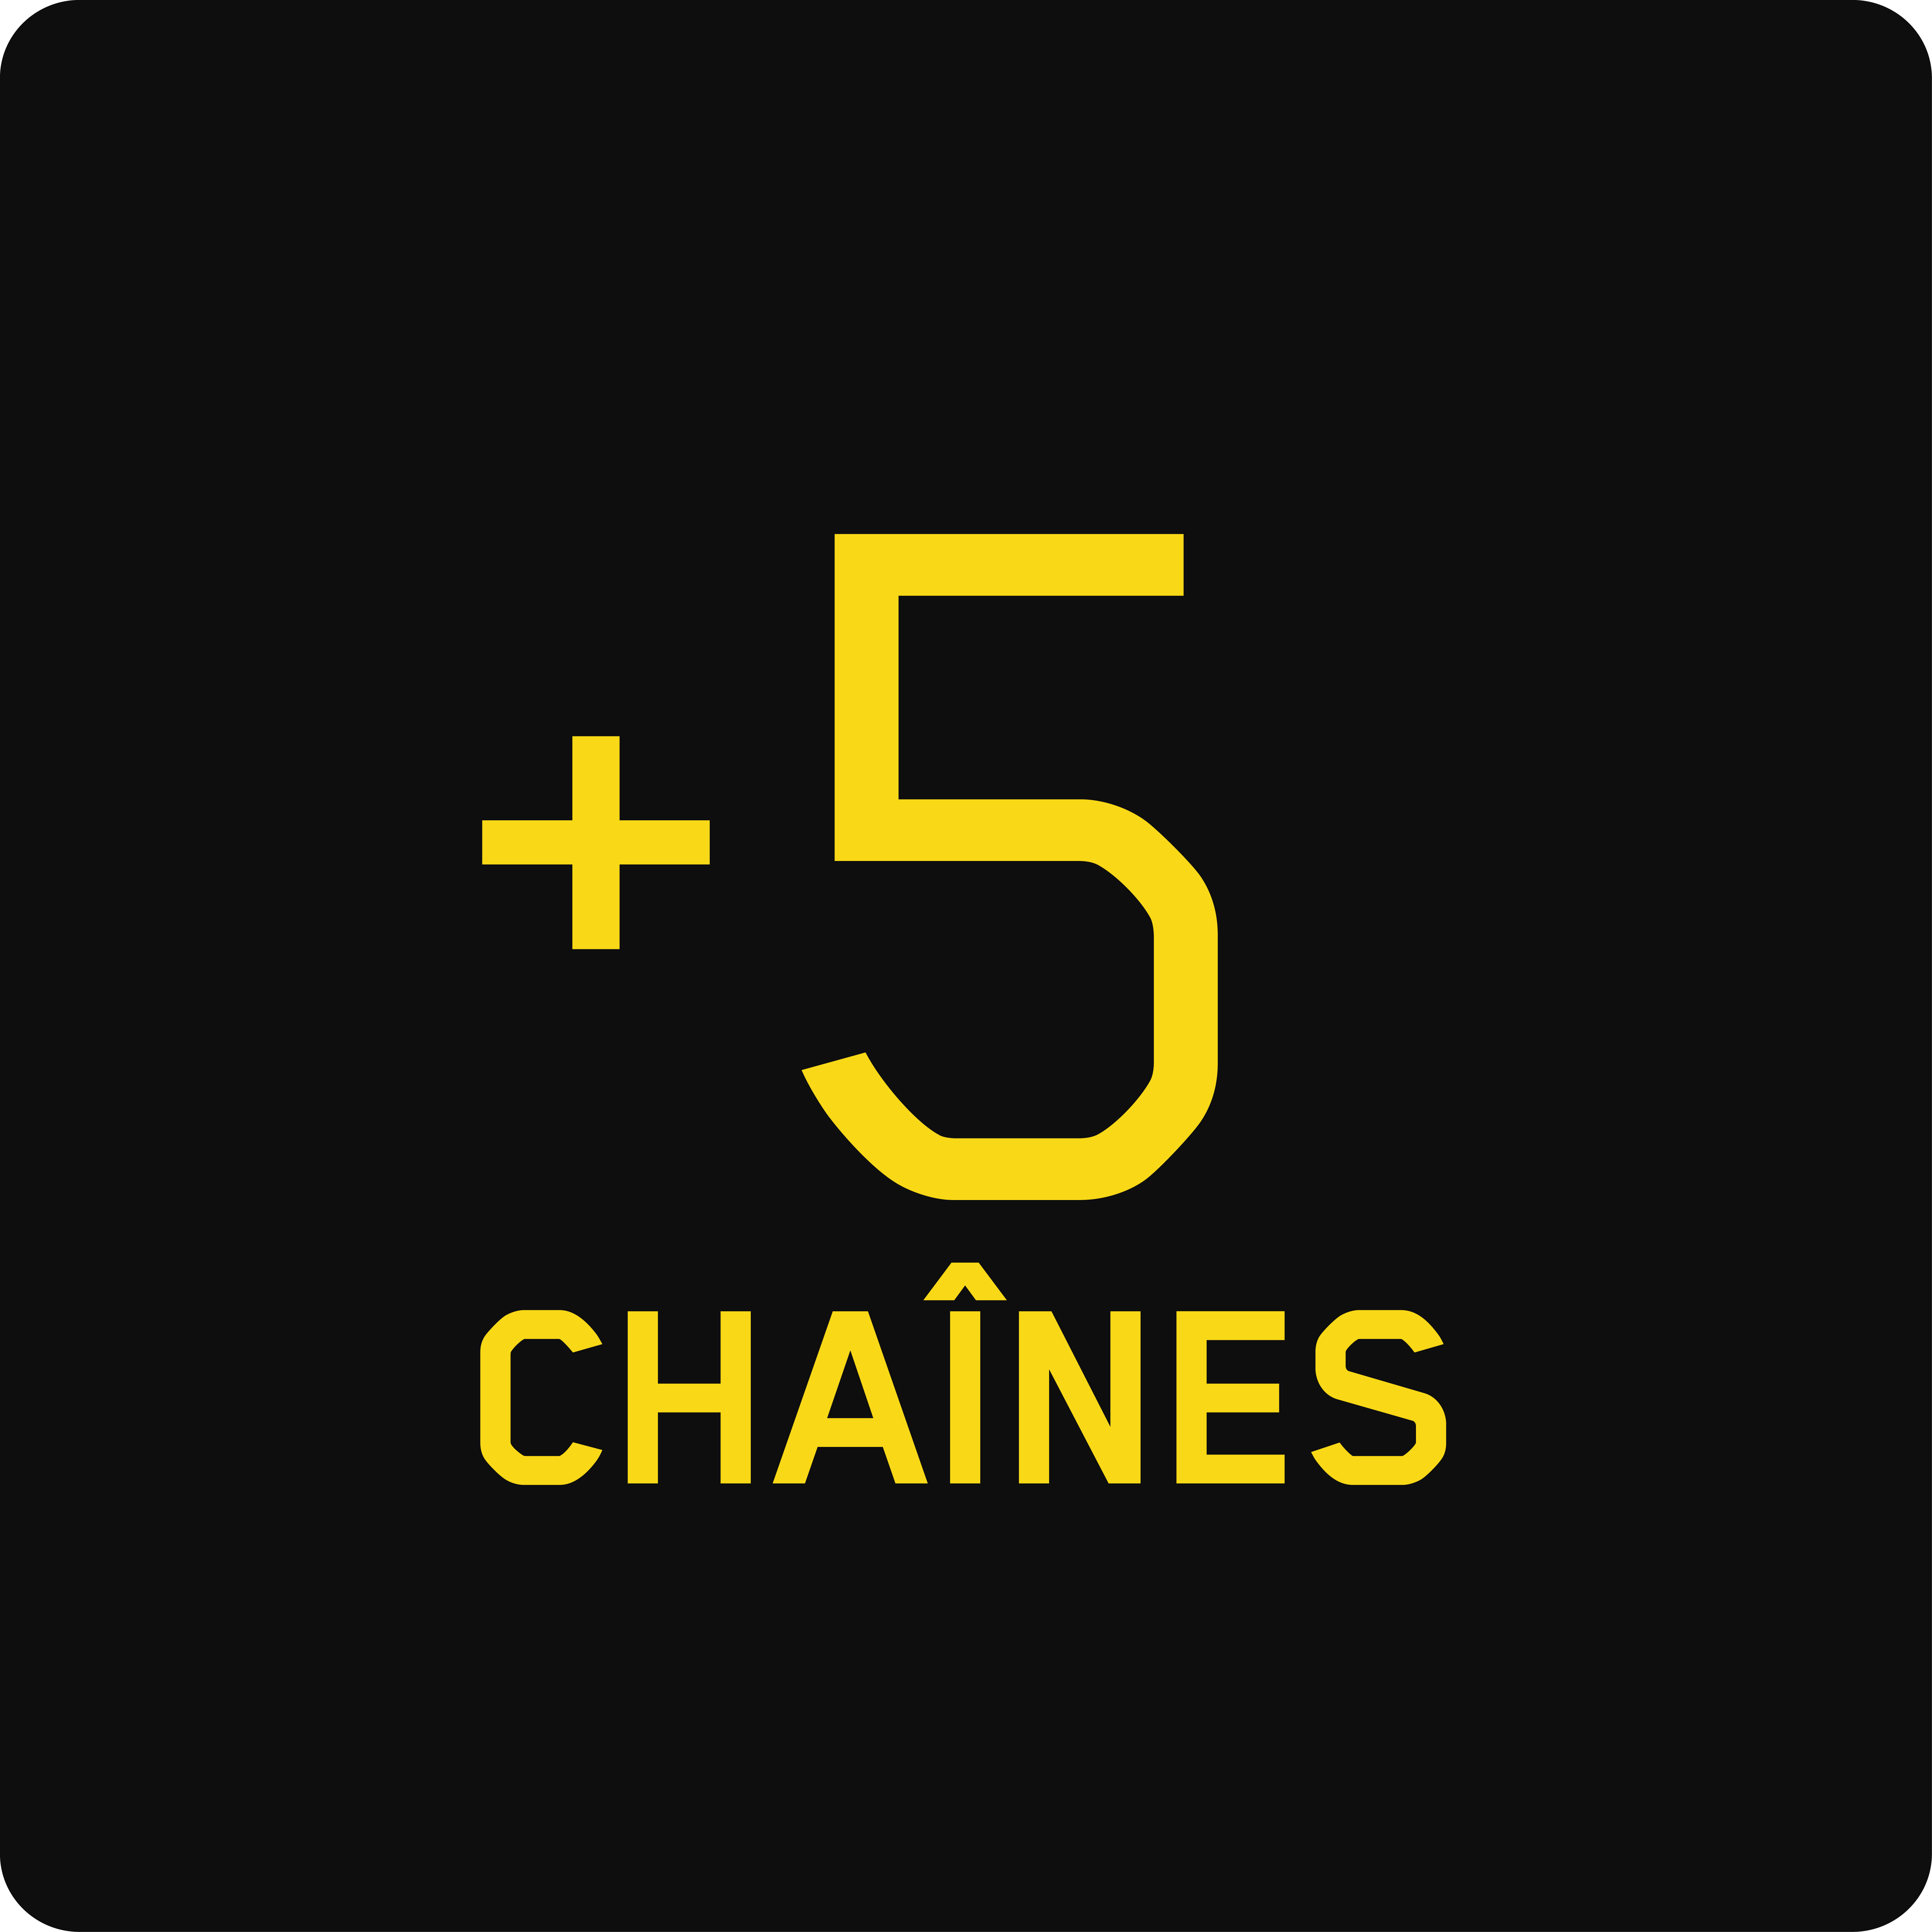 5 chaînes additionnelles